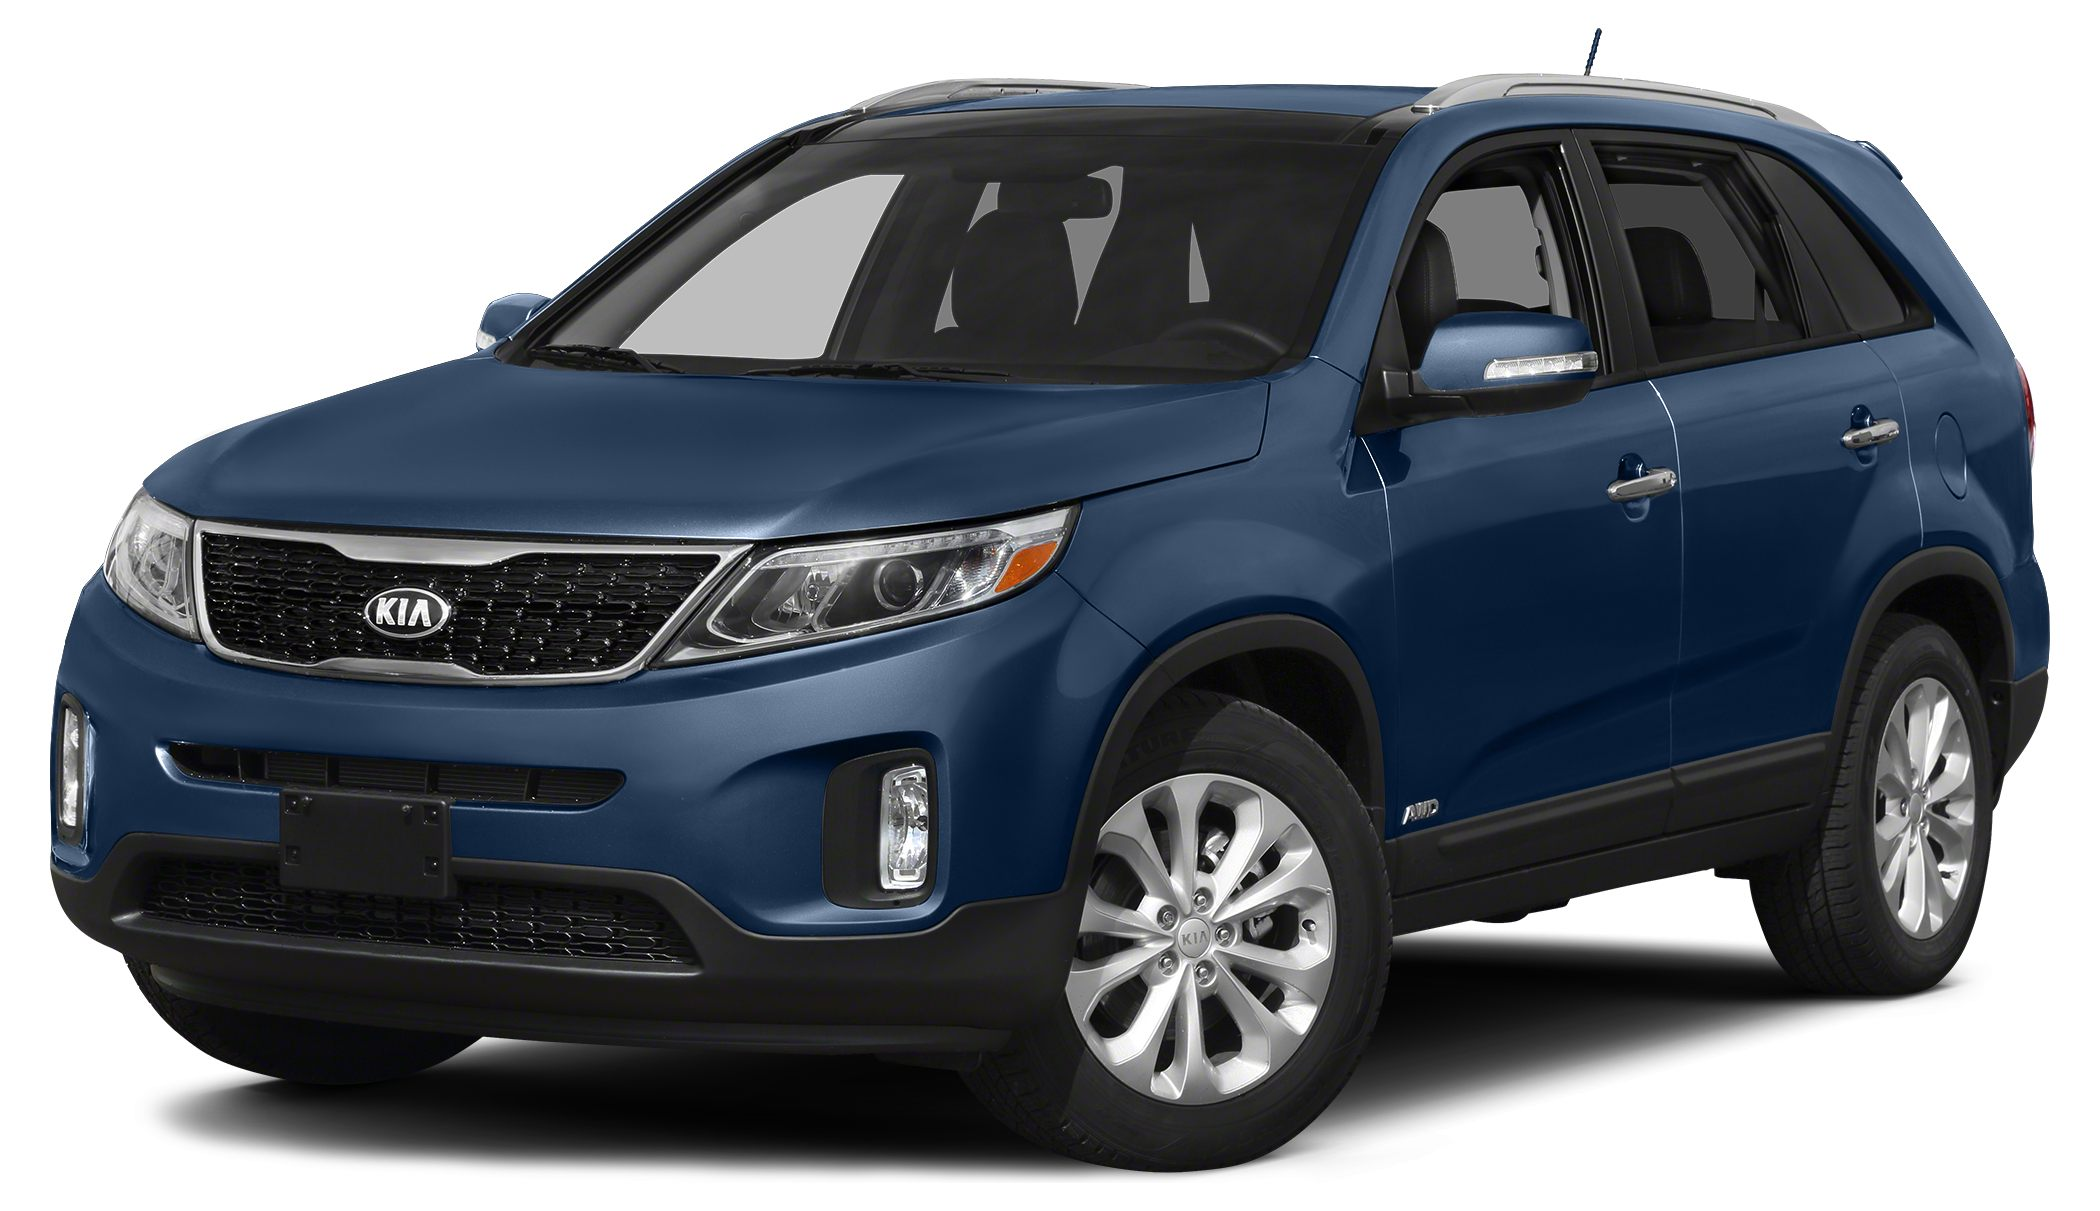 2015 Kia Sorento LX For Internet Pricing and InformationPlease call Teresa Brown  866-387-3798It